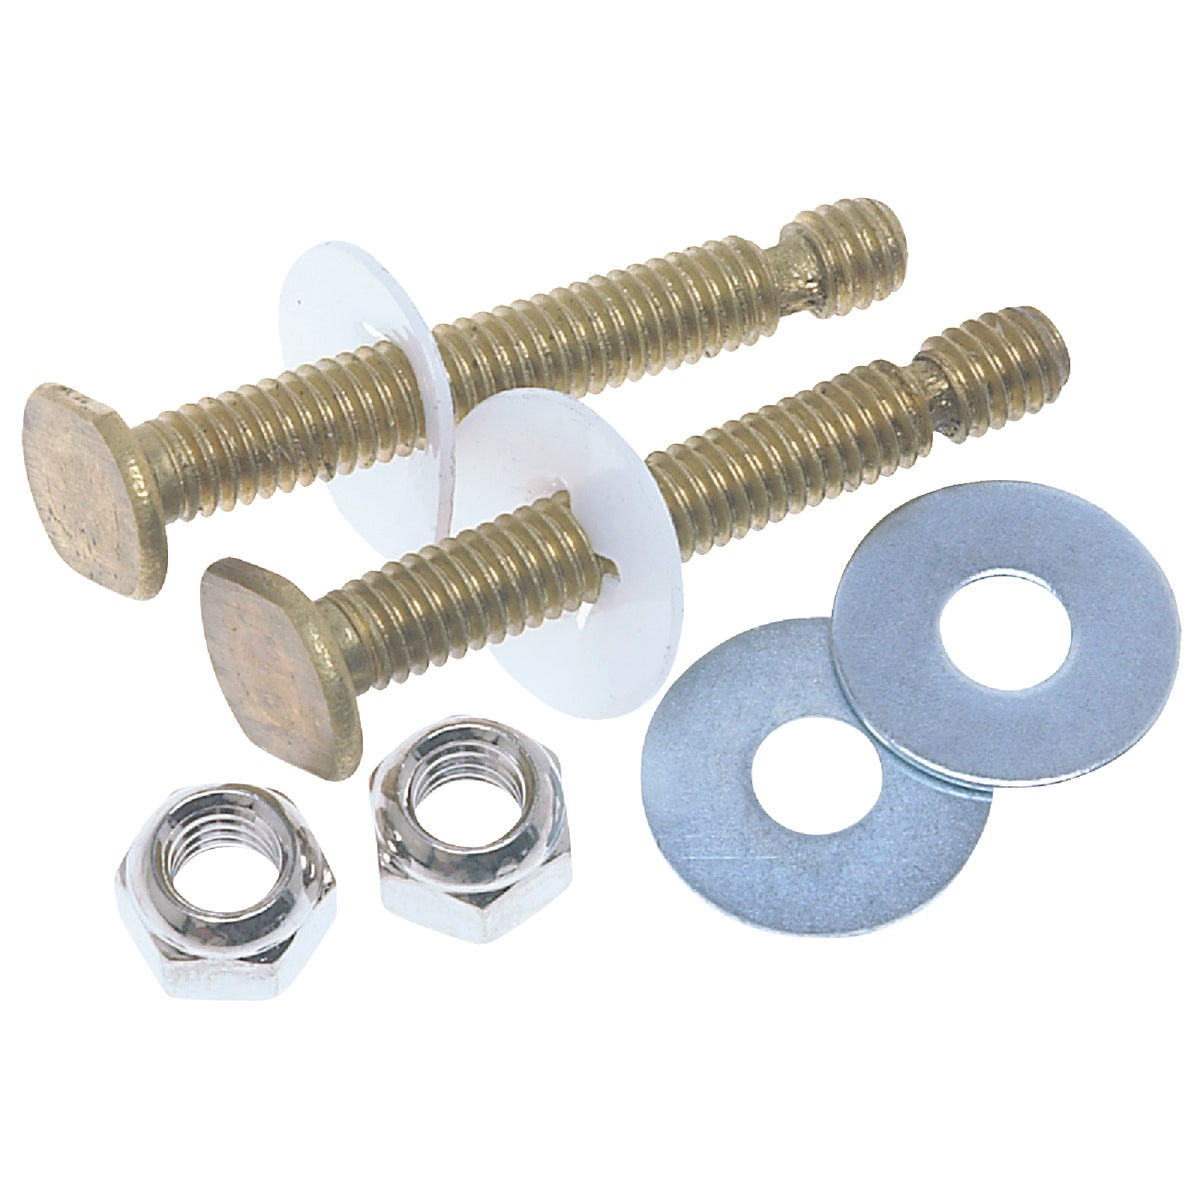 "5/16"" TOILET BOLT SET - 405477 by Do it Best"